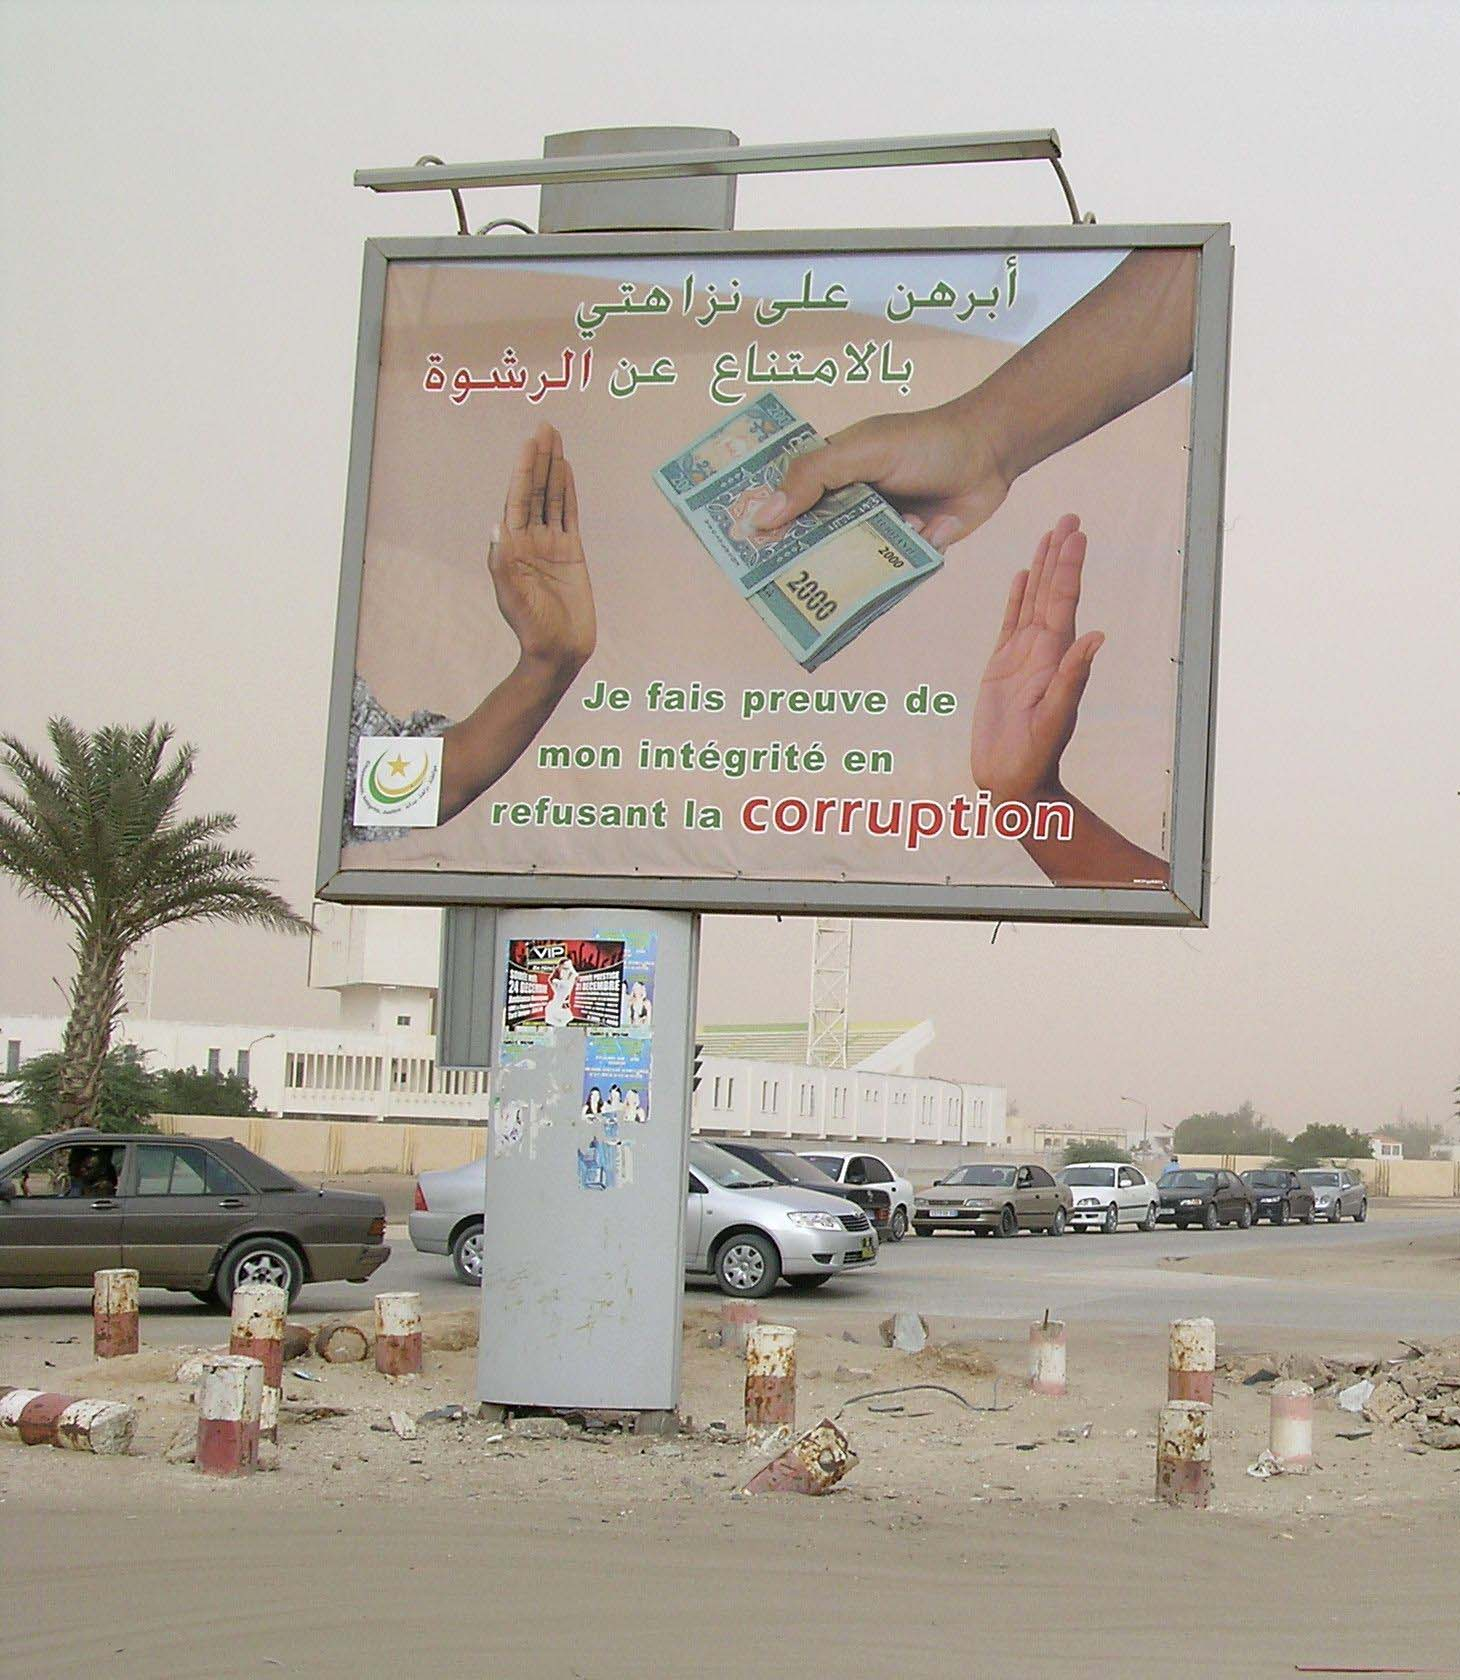 An anti-corruption sign in the North African country Mauritania from 2007.